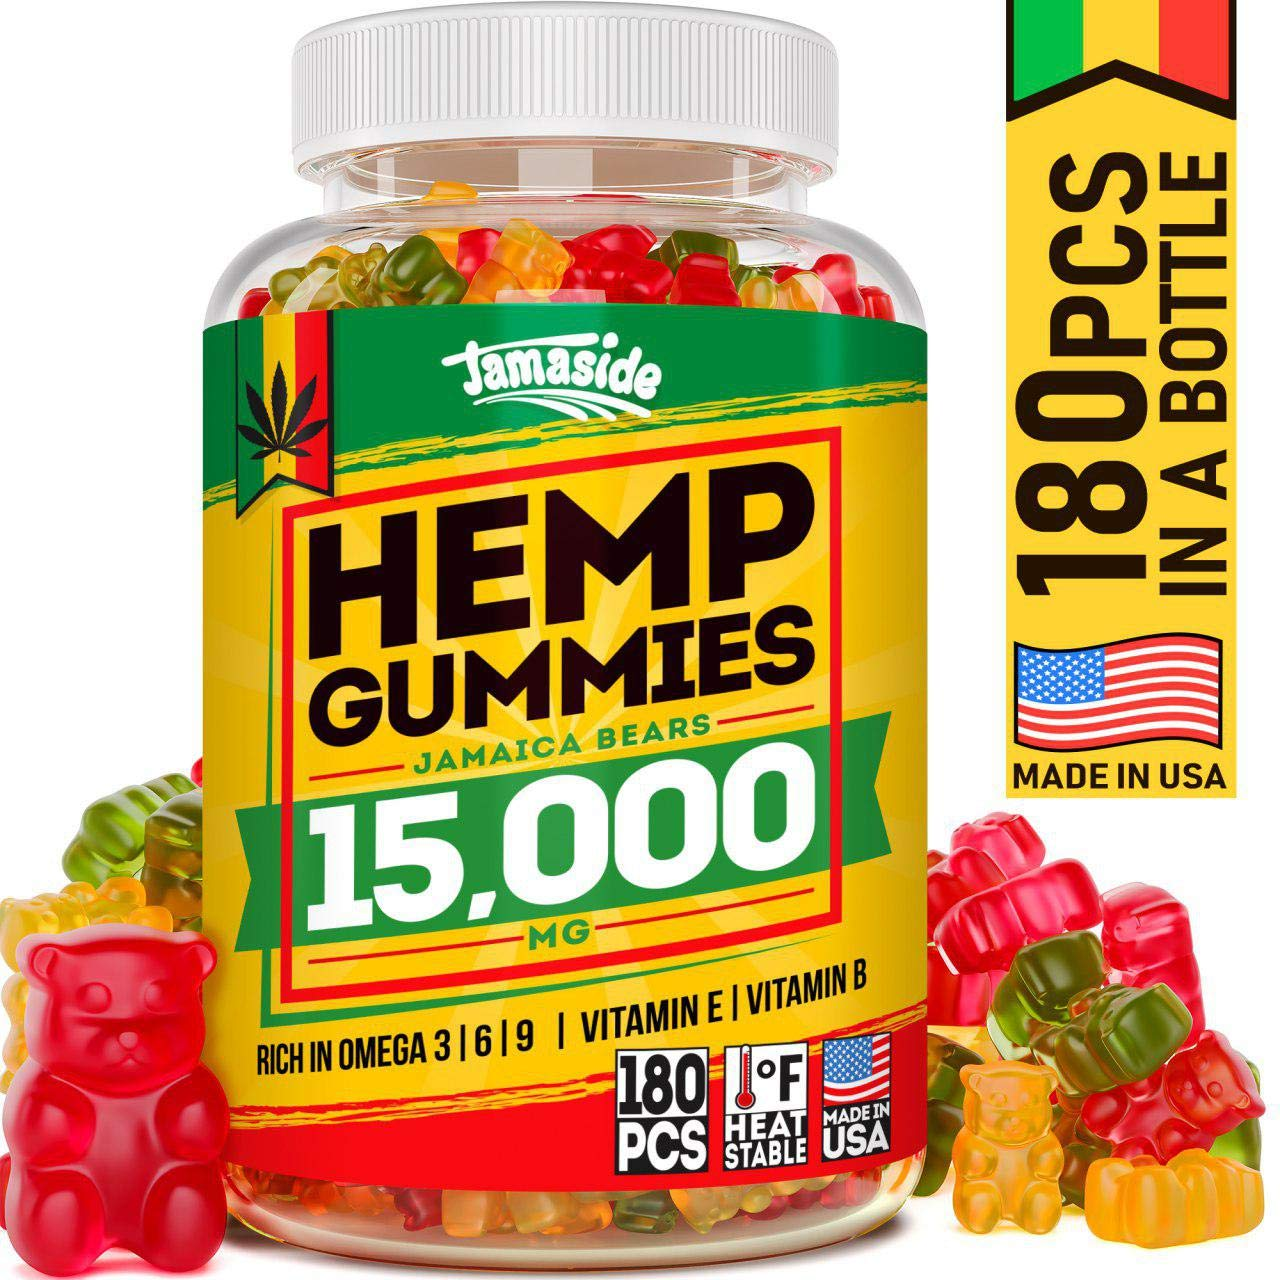 Hemp Gummies 15000 MG - Made in USA - 180 MG Hemp in Each Gummy - Premium Hemp Extract - CO2 Extraction - Omega 3, 6, 9 - Anxiety & Stress Relief - Sleep & Mood Improvement by Jamaside